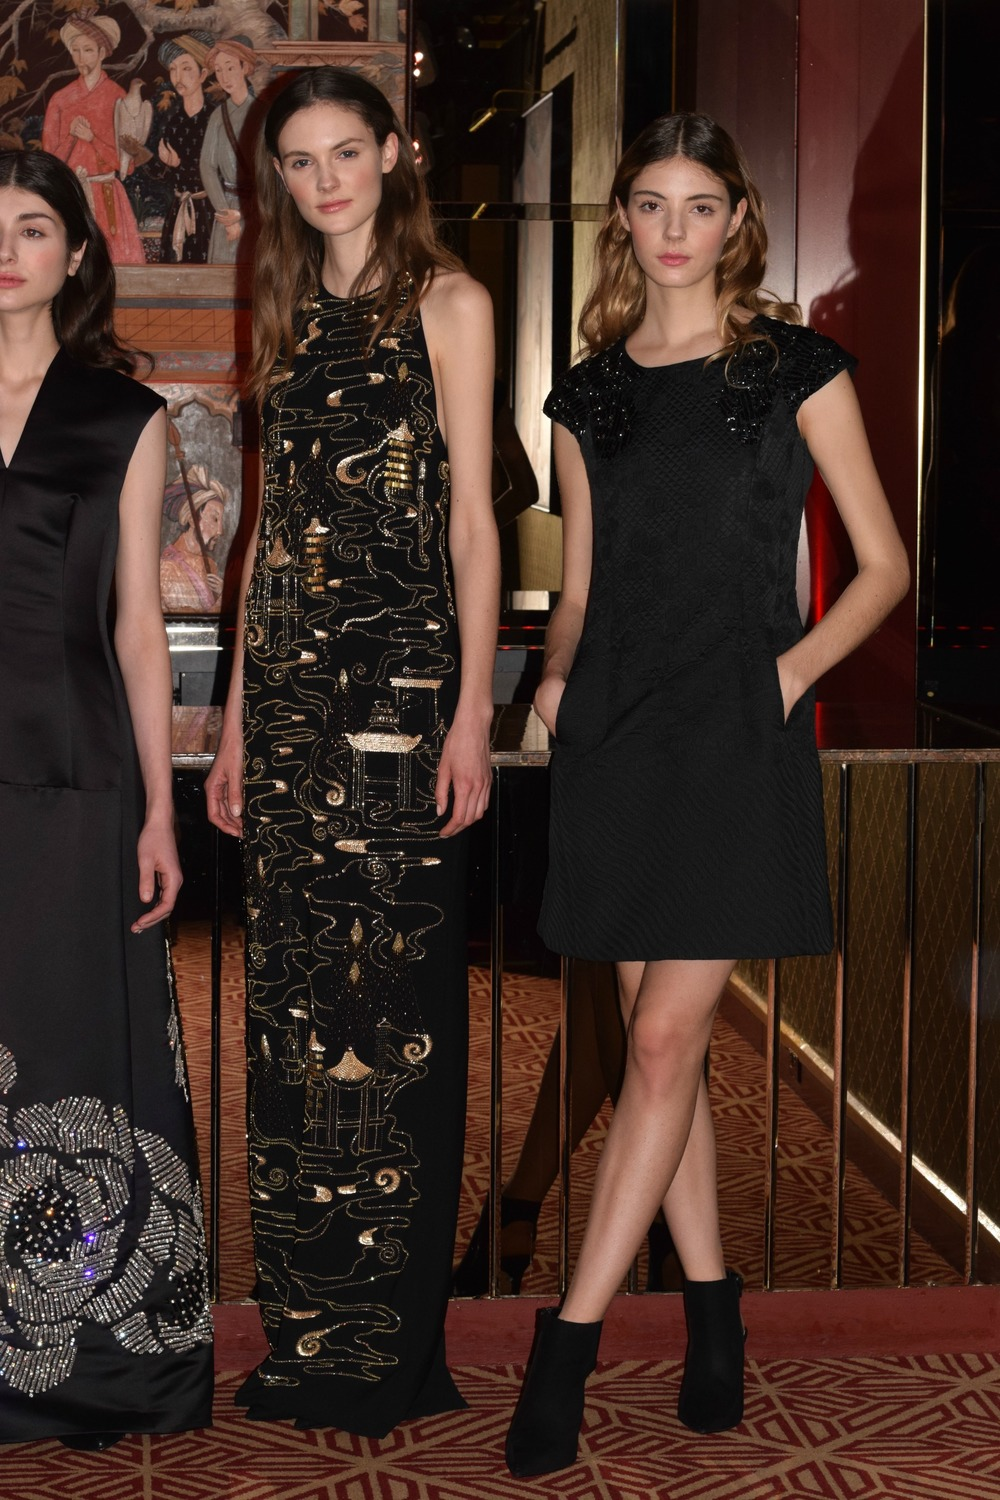 NYFW Josie Natori Fashion Presentation Fall:Winter 2016 Louboutins & Love Fashion Blog Esther Santer NYC Street Style Runway Models Collection Hair Inspo Beauty Press Event Coverage Photos Details Gown Dress Trends Beautiful Pretty Lace Gorgeous Blue.jpg